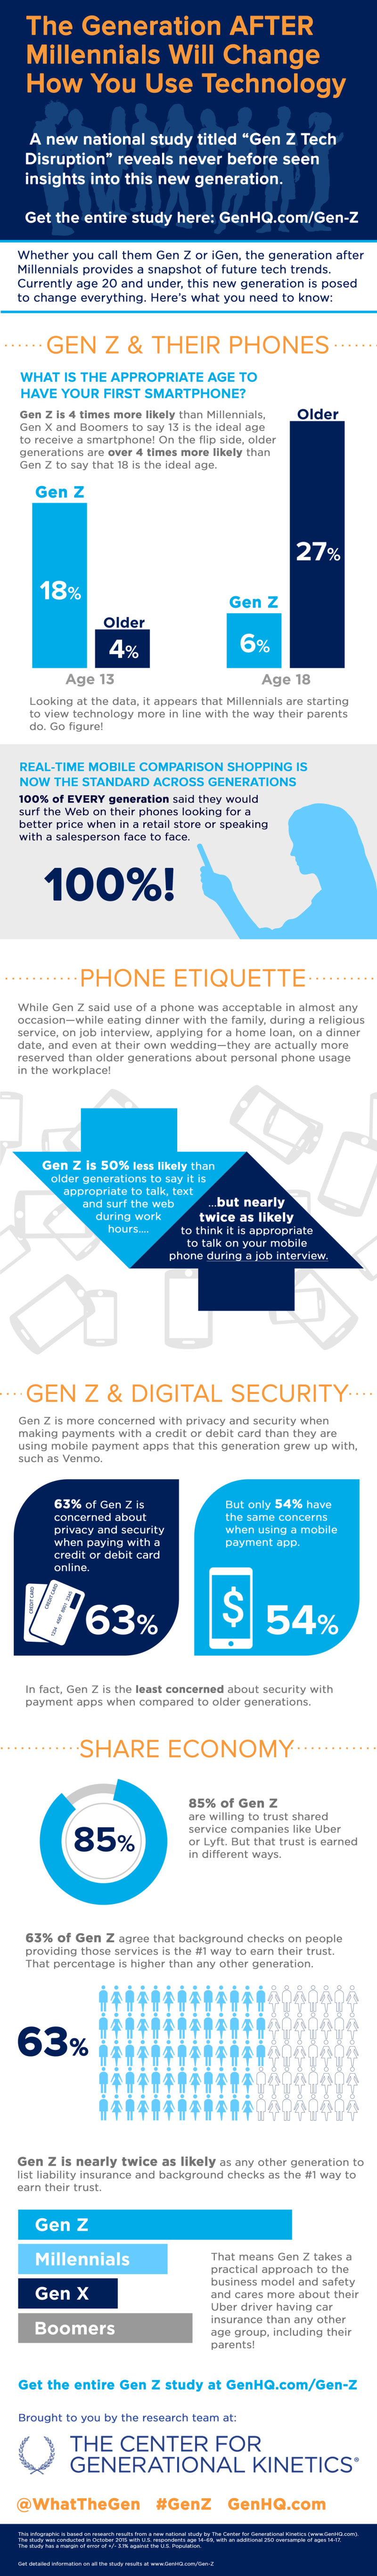 Gen-Z-Technology-c-2016-The-Center-for-Generational-Kinetics